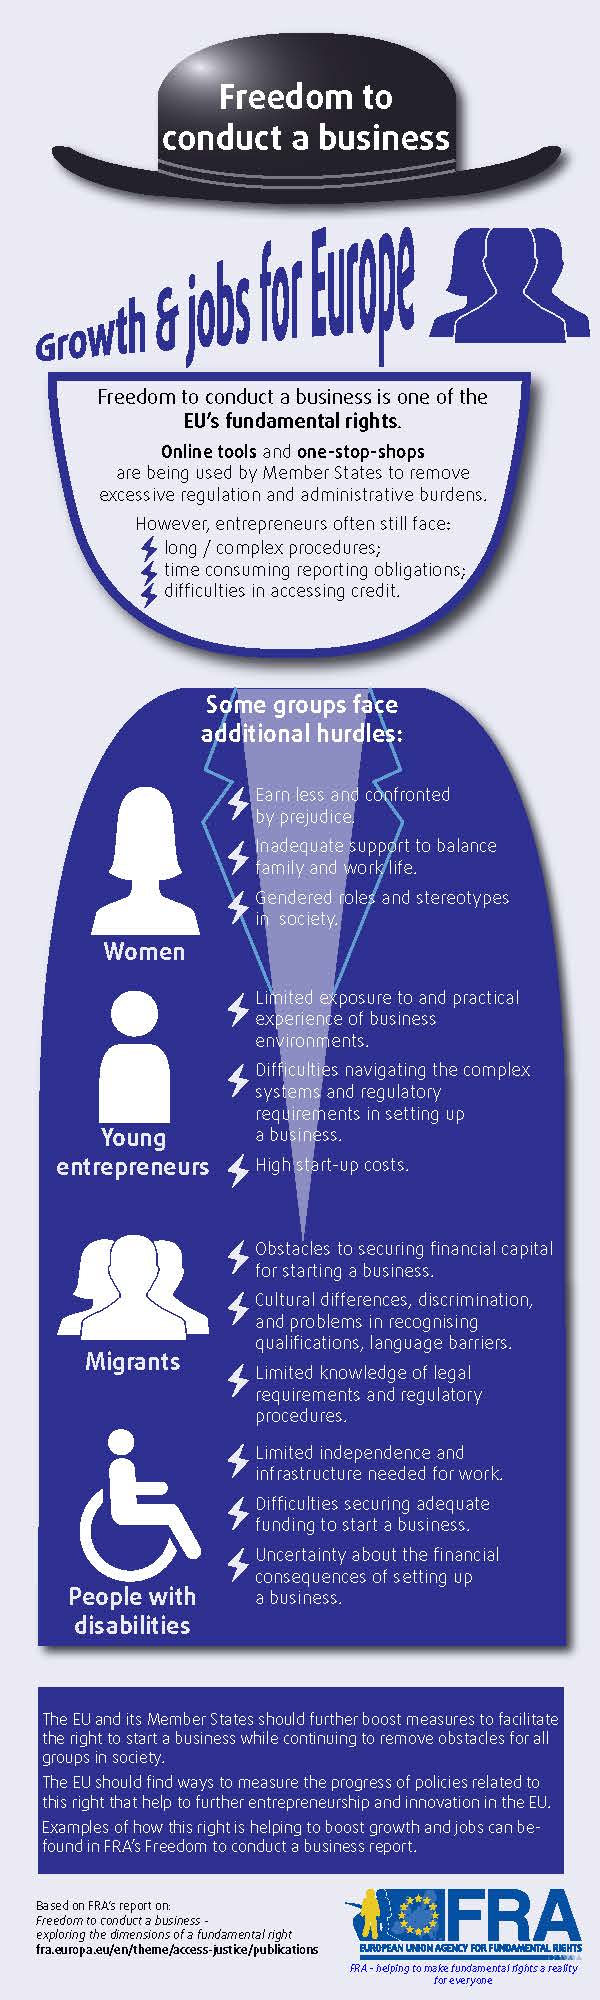 Freedom to conduct a business infographic